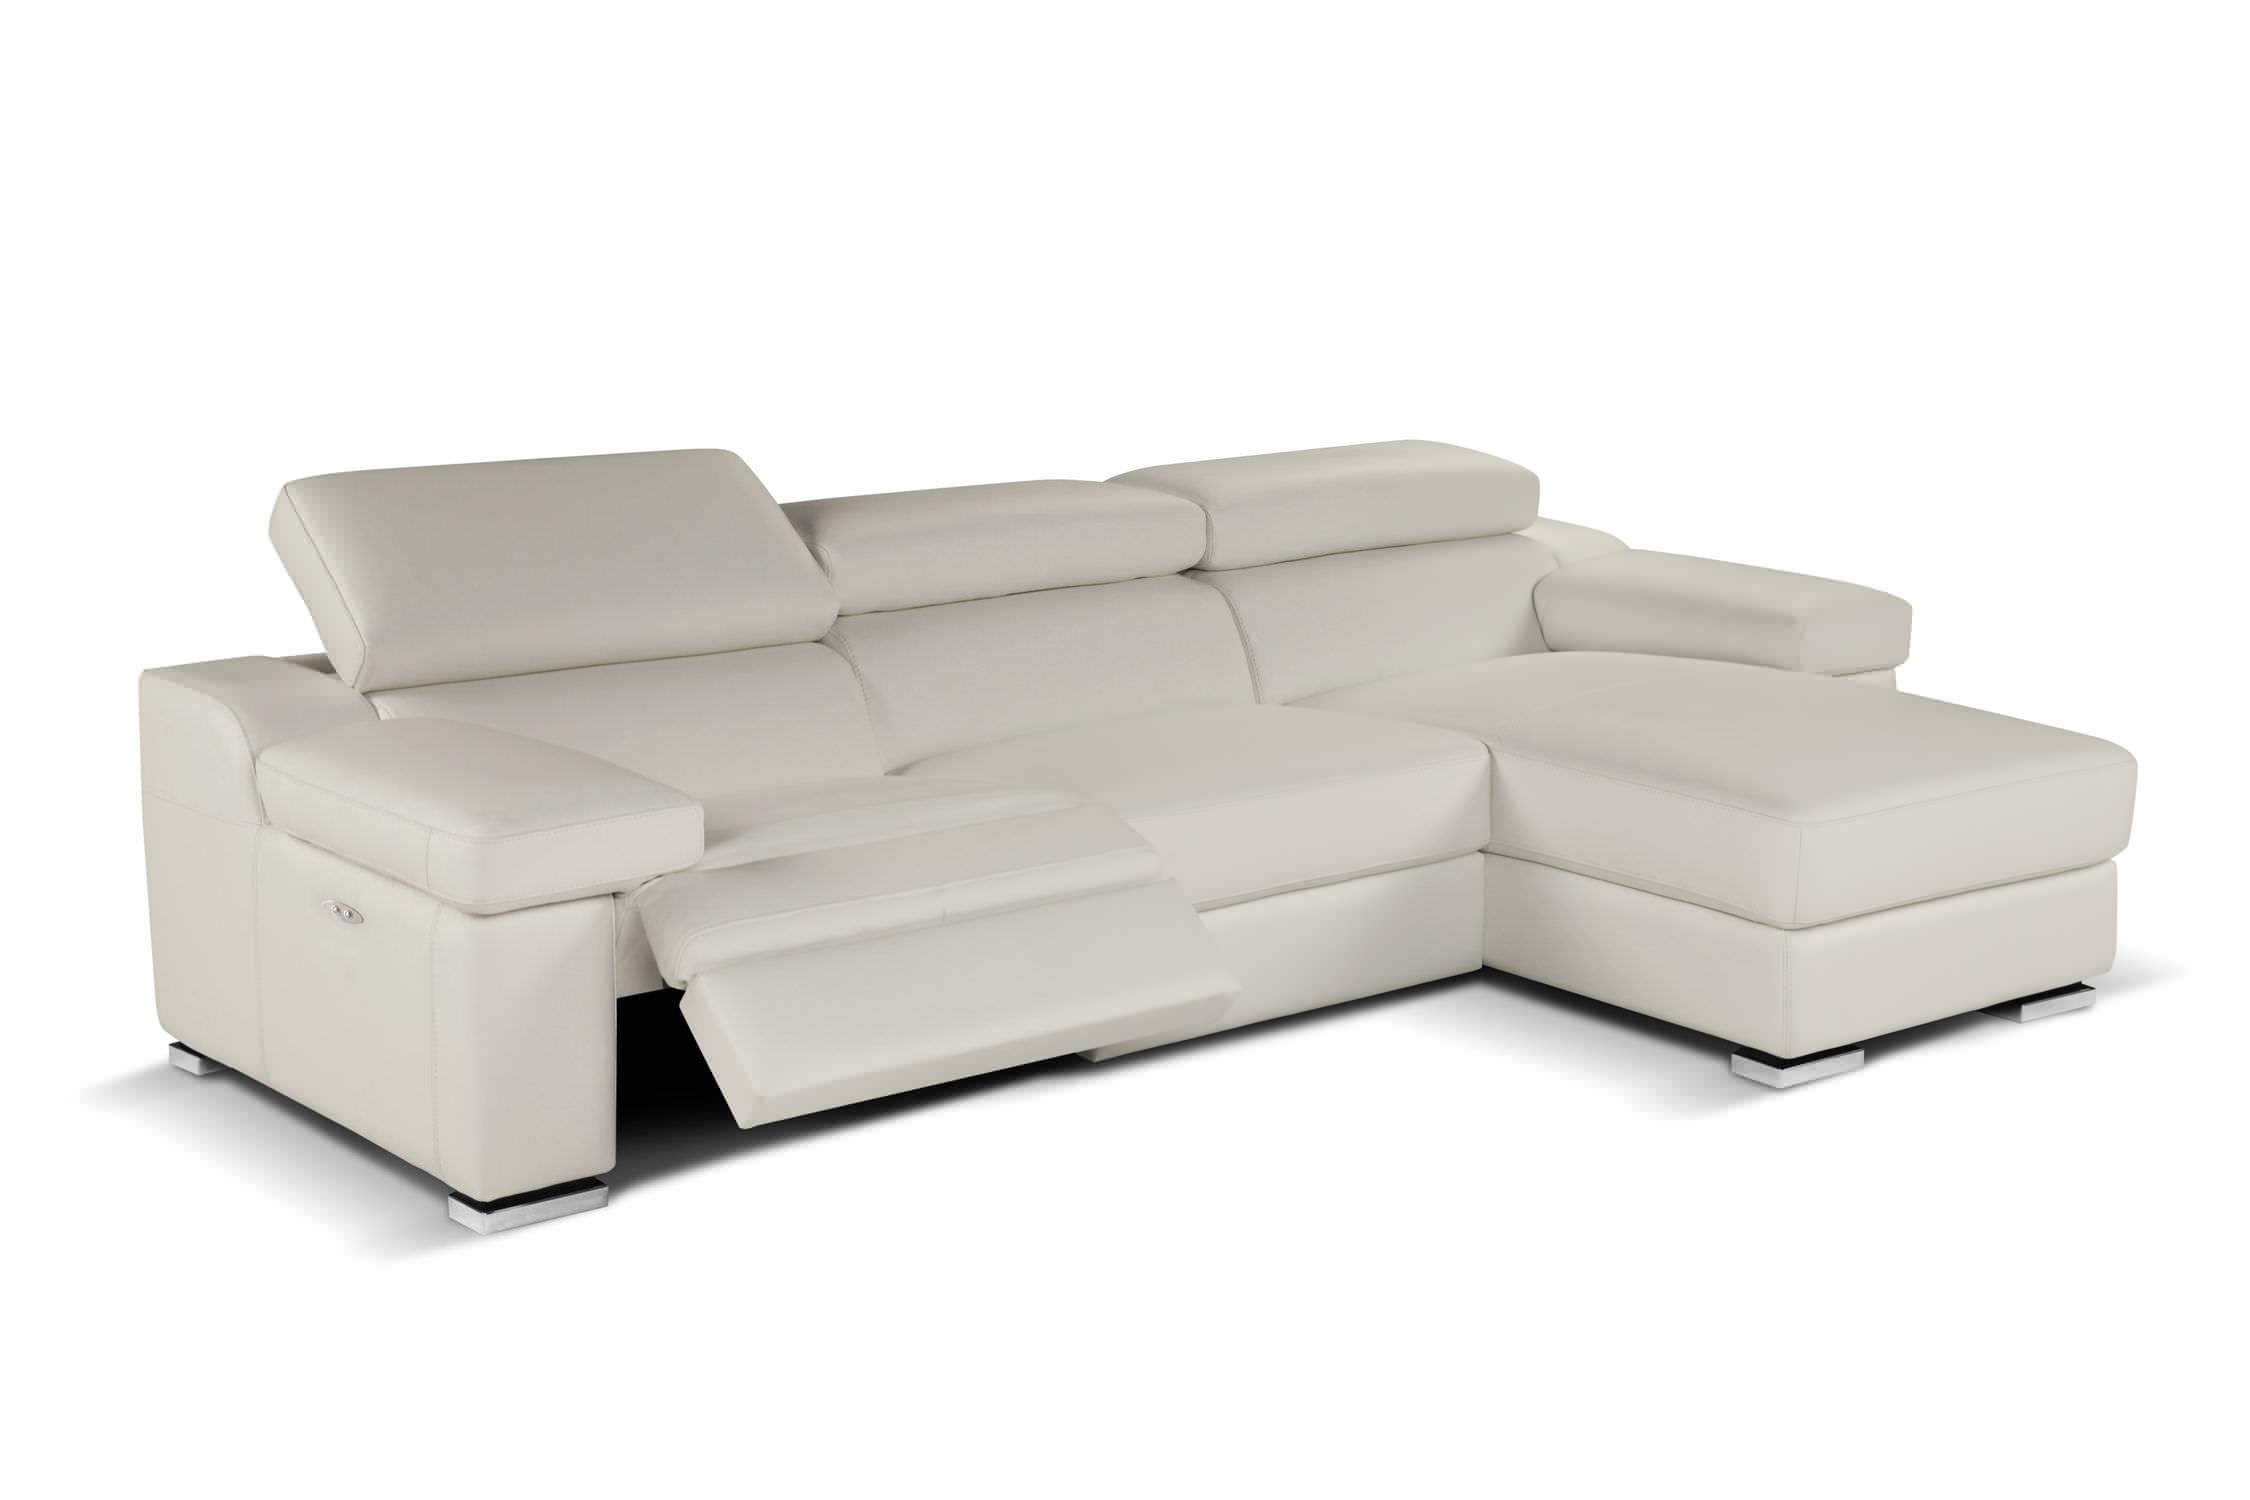 Contemporary Sofa / Leather / 2 Seater / Reclining – Rebecca With Modern Reclining Leather Sofas (Image 1 of 20)